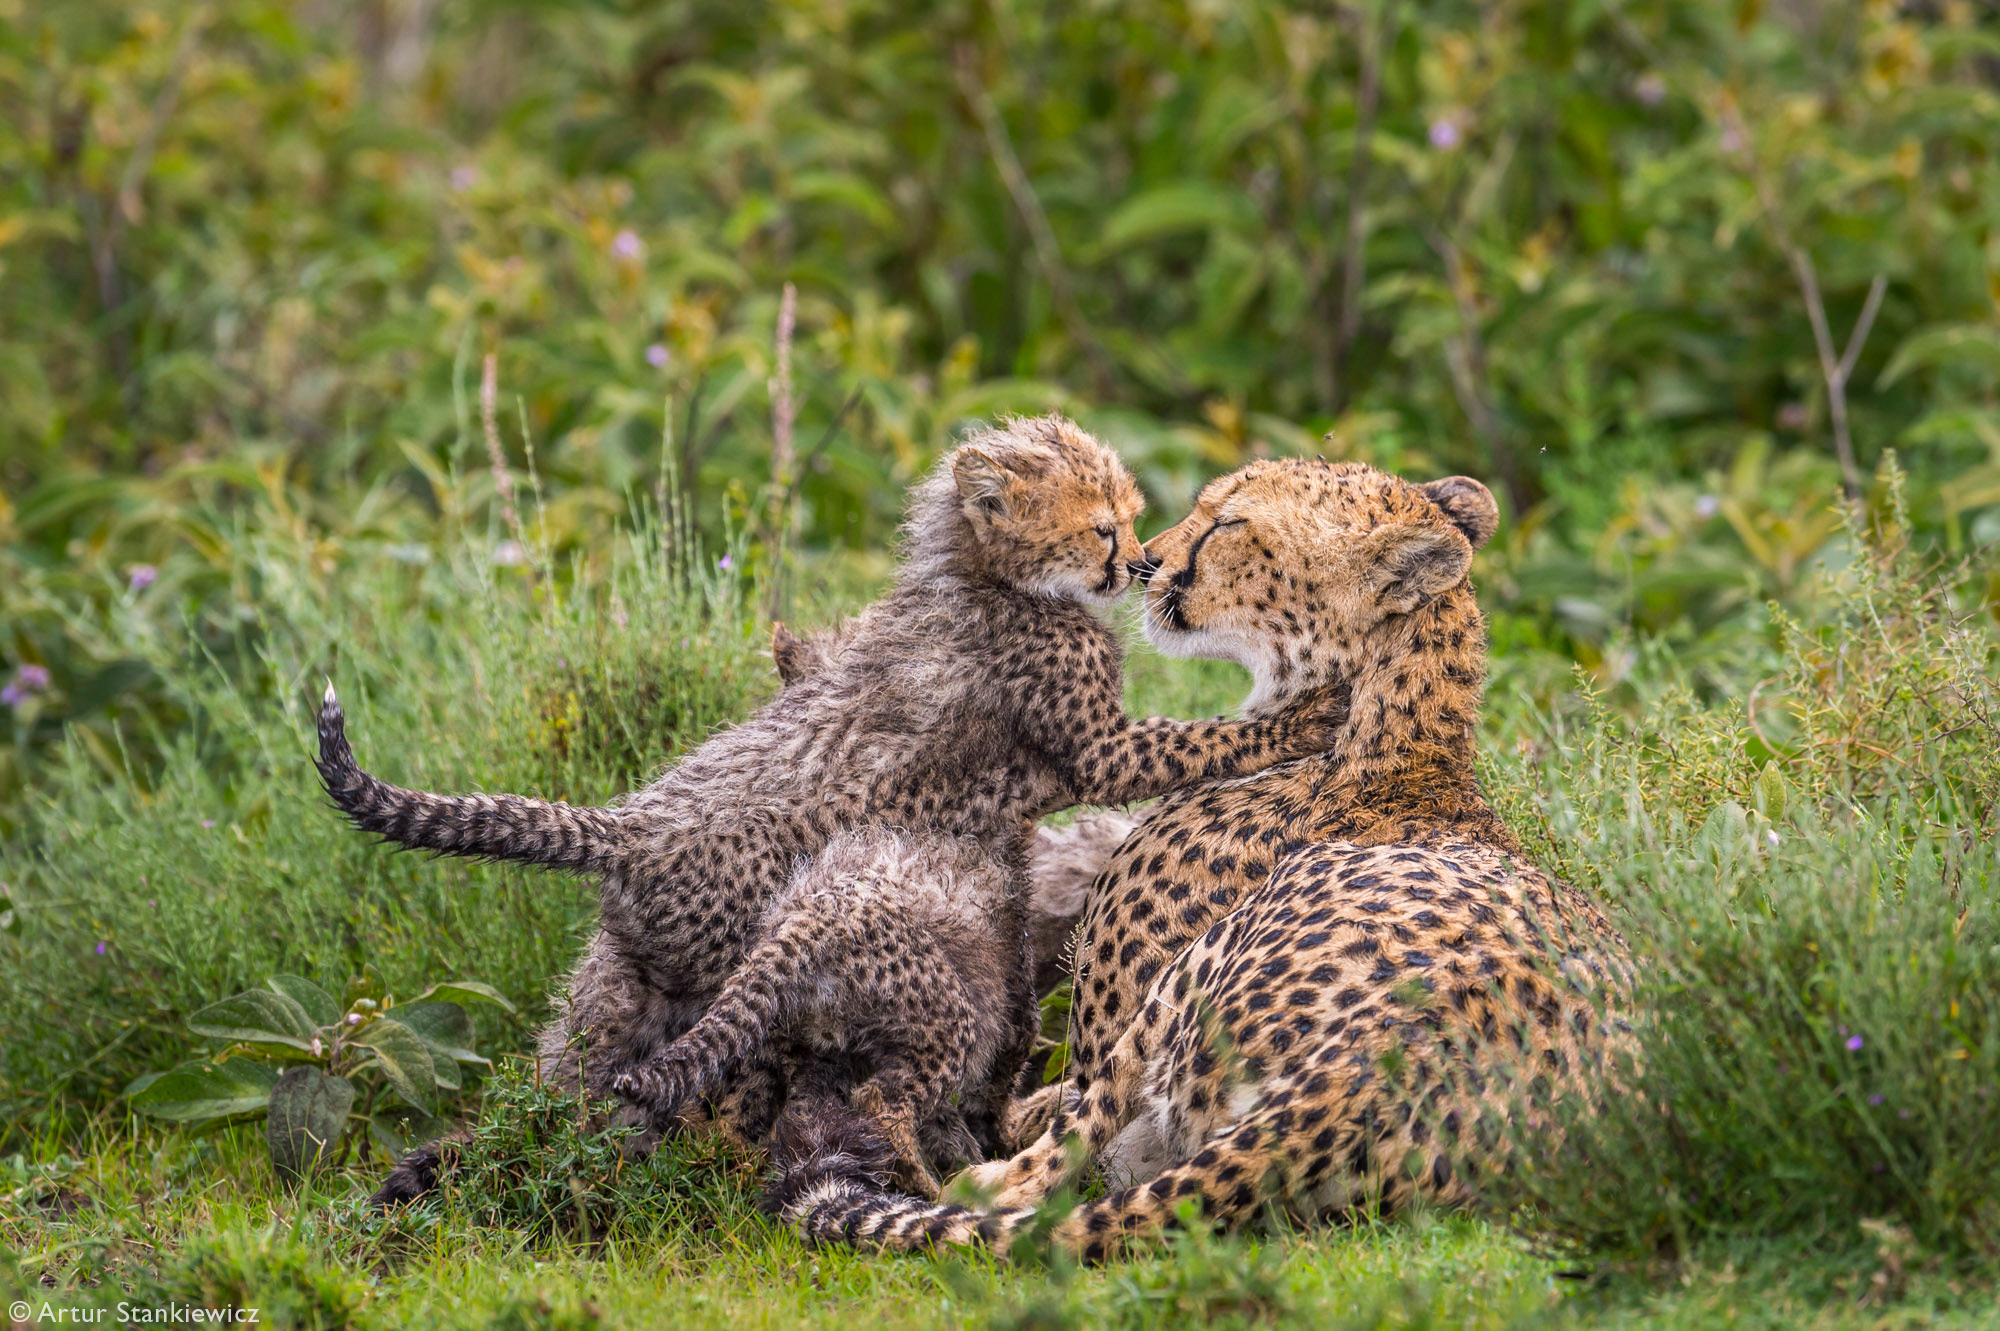 A cheetah mother with her cubs after heavy rains in Lake Ndutu, Ngorongoro Conservation Area, Tanzania